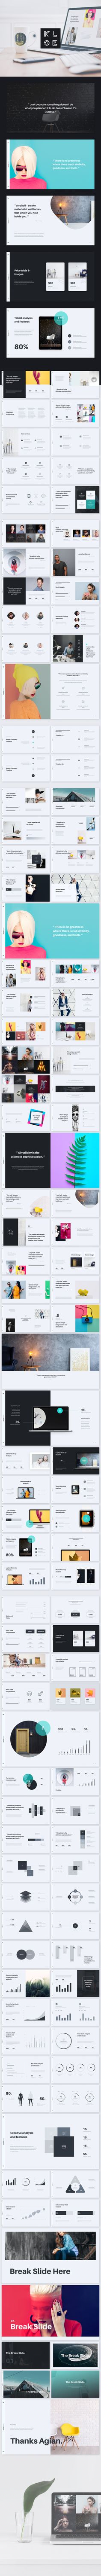 Kloe multipurpose & minimal keynote template